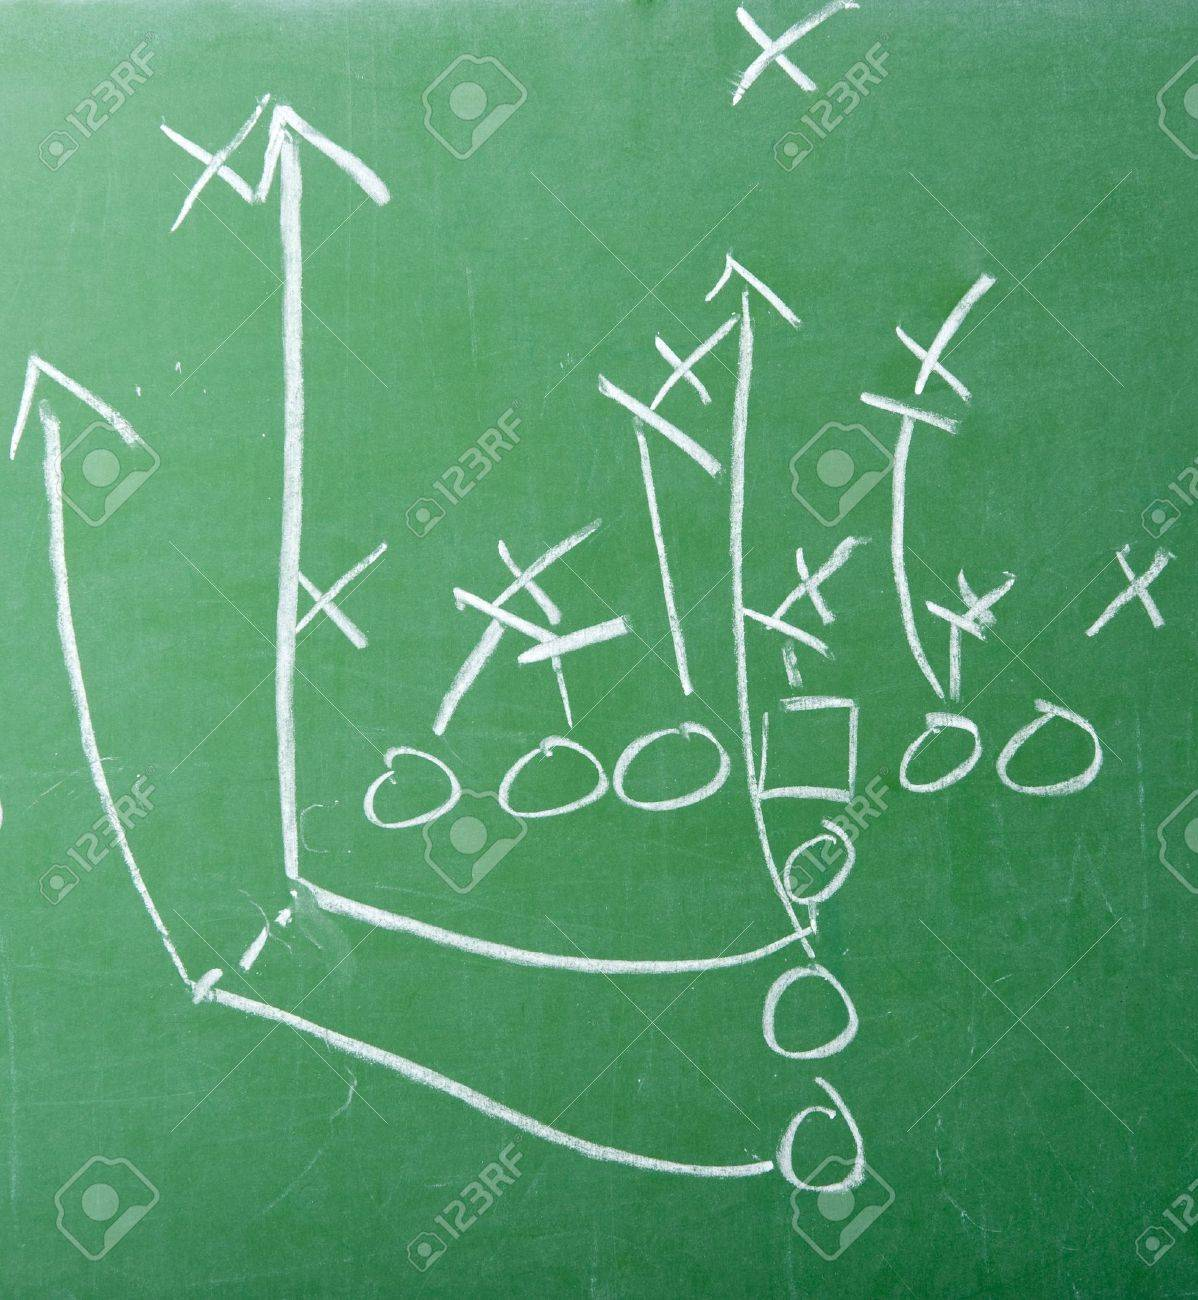 A diagram of an American football play on a green chalkboard Stock Photo - 5193420